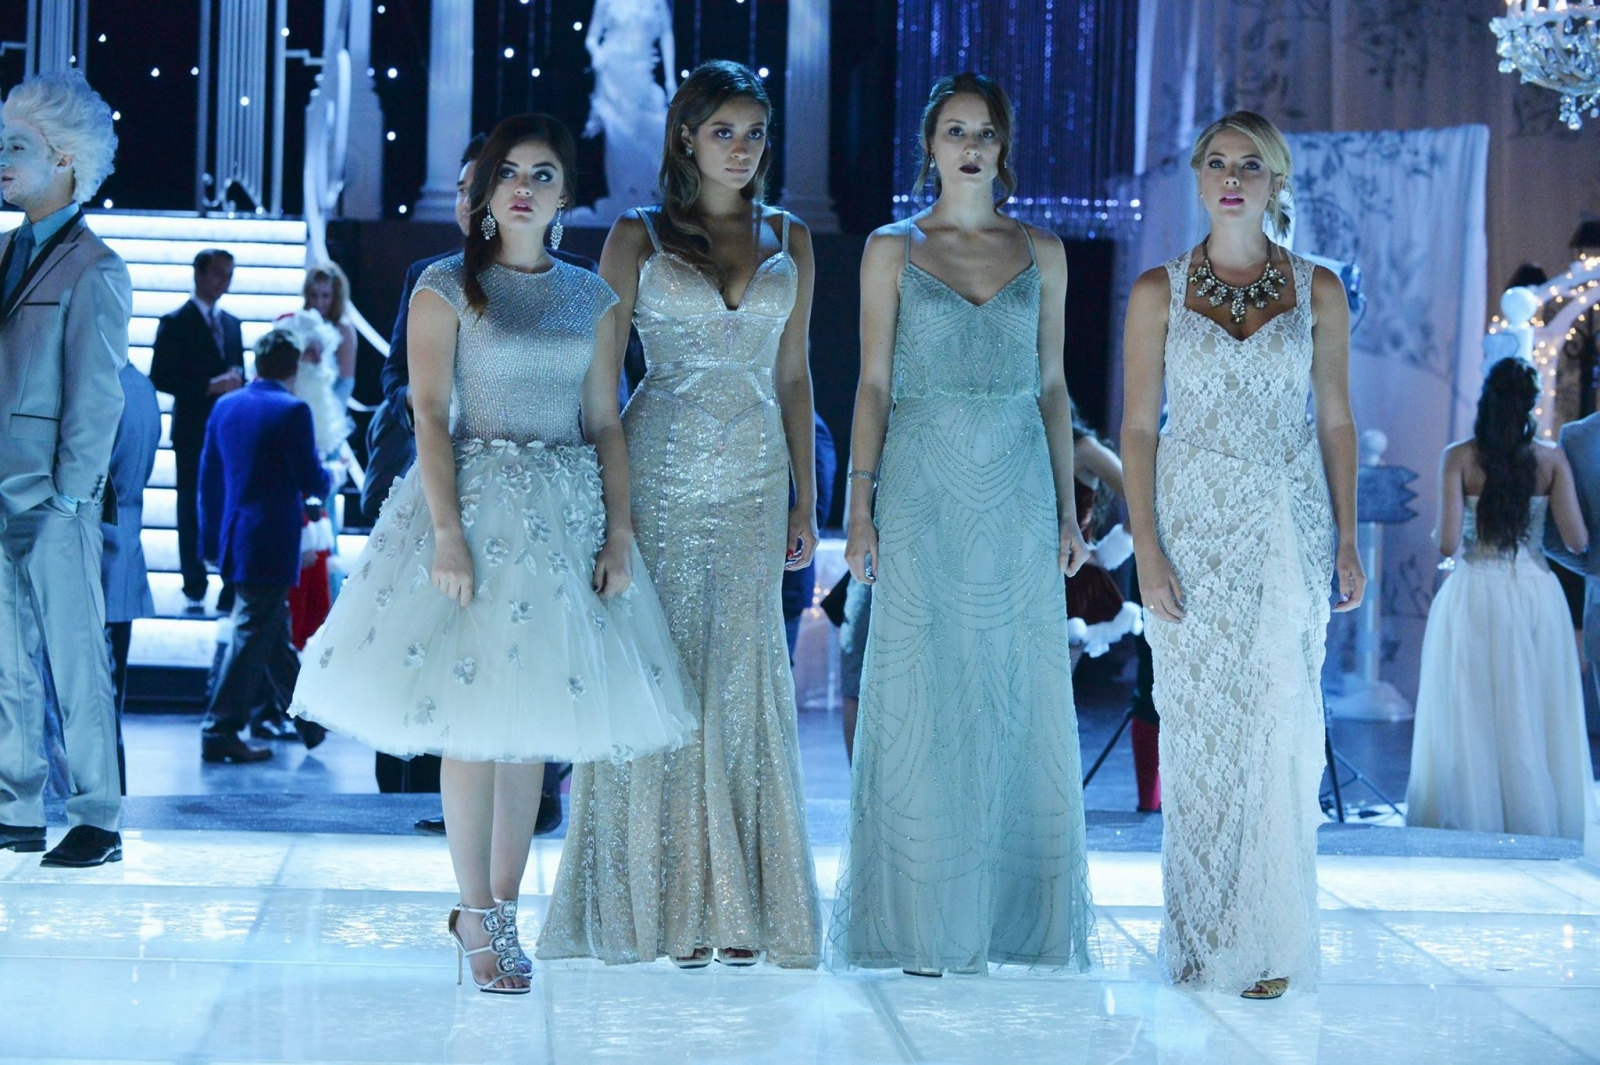 Pretty Little Liars Season 5 Spoilers: 'A' Seen Lurking Around the Liars in Christmas Party and Alison's Latest Clique